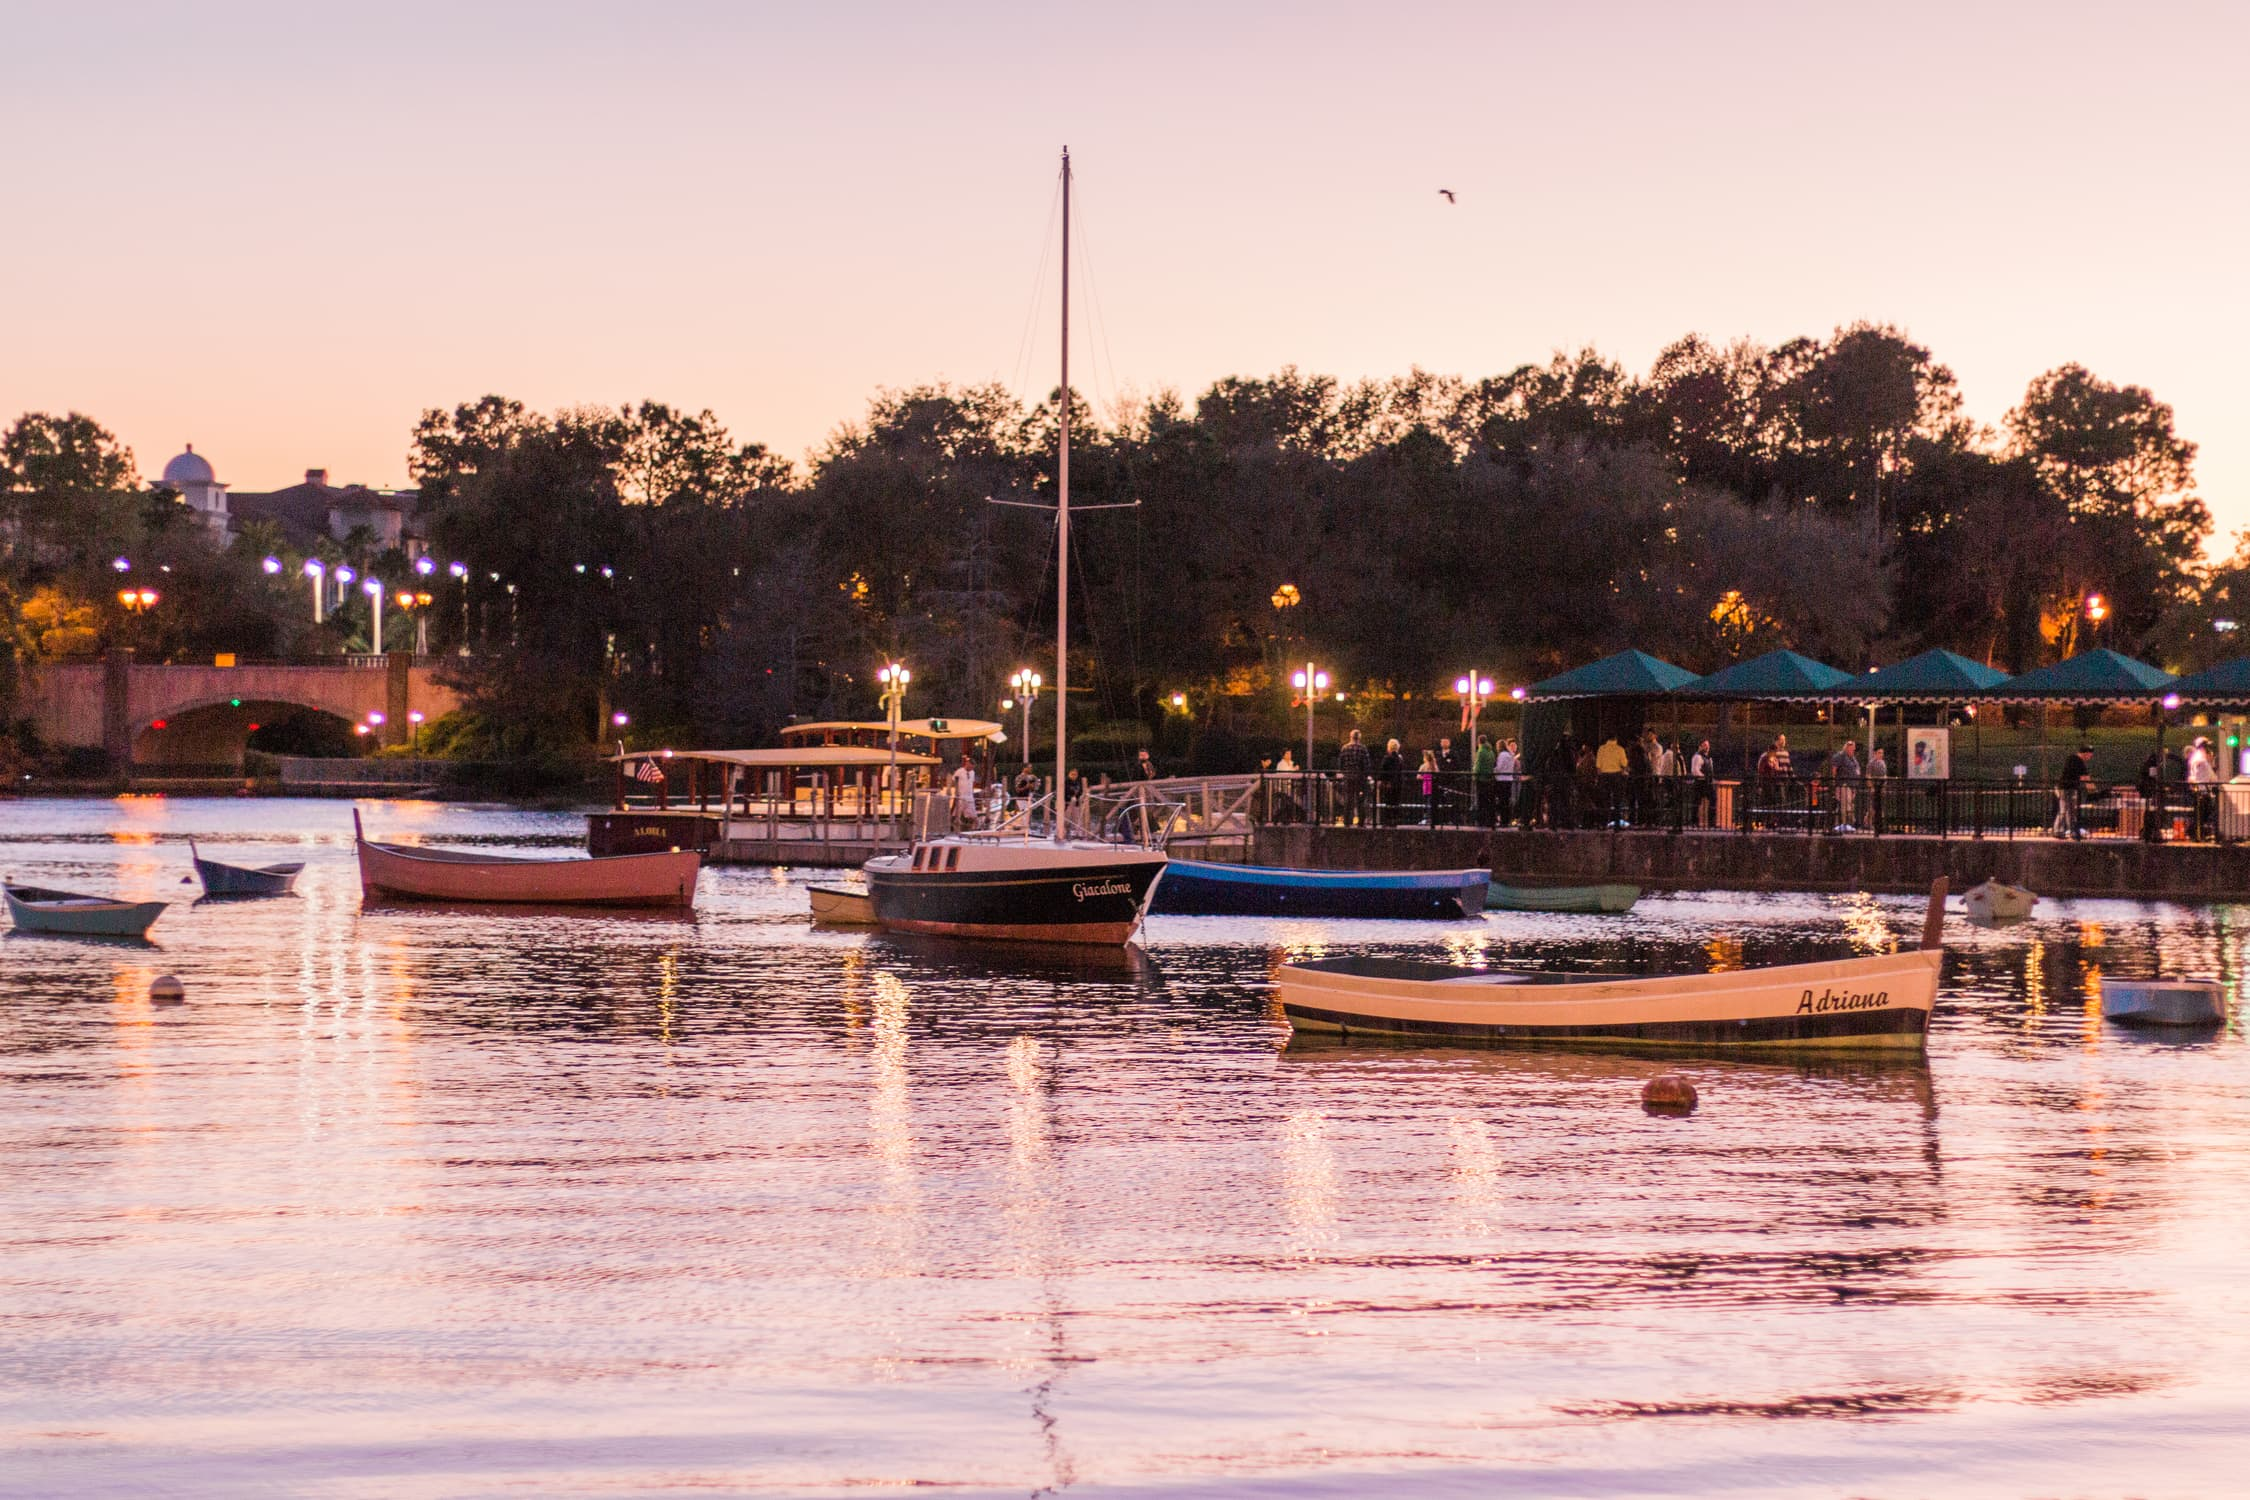 Harbor view of boats at sunset Portofino Bay Hotel